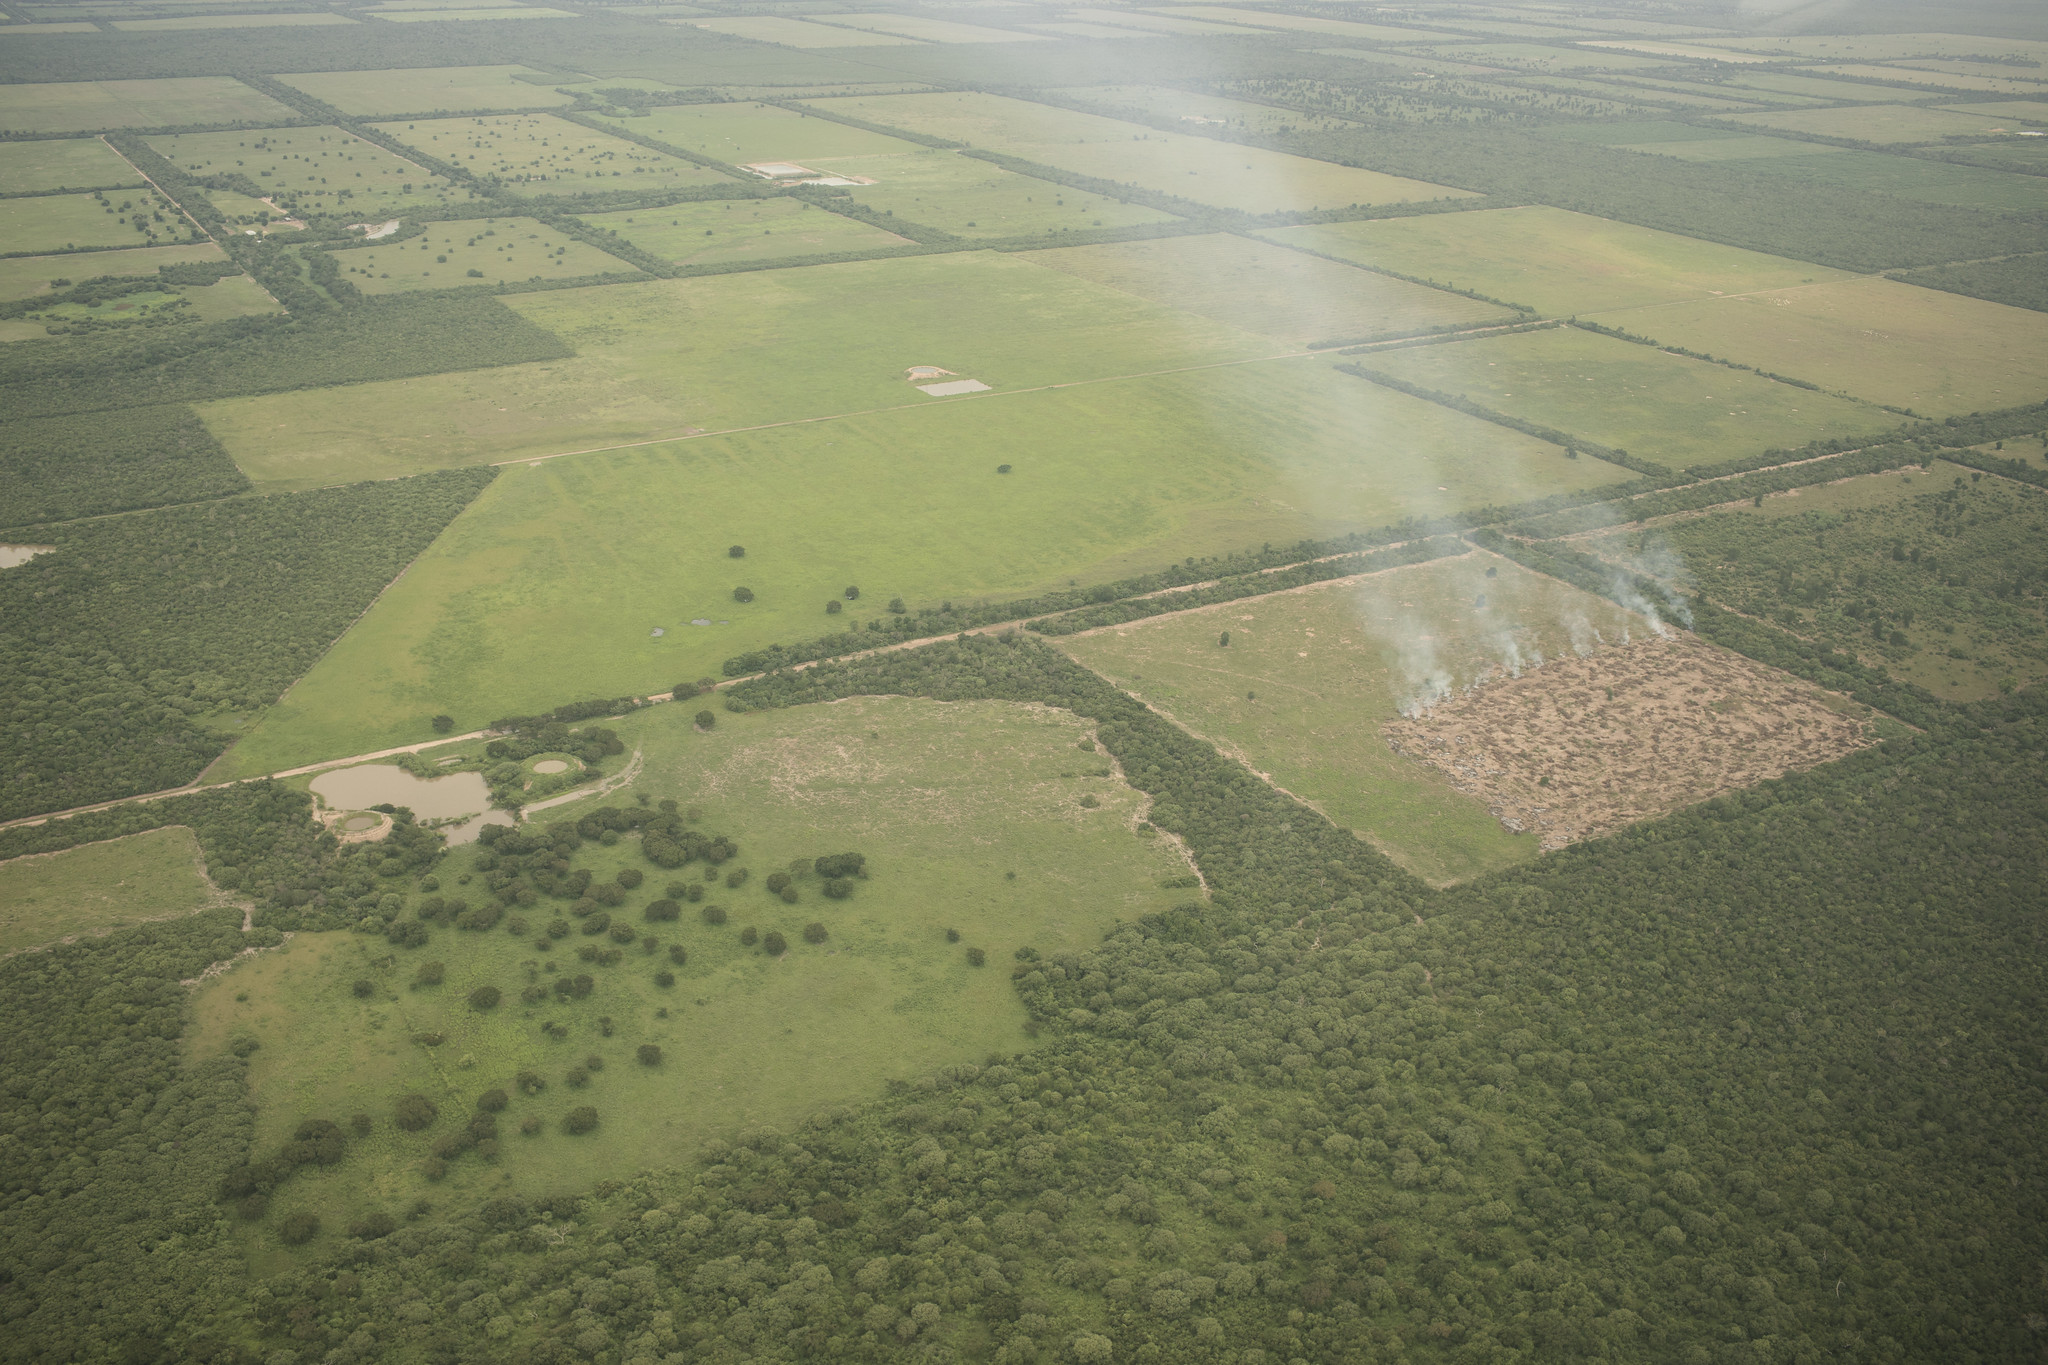 fire clearing cattle pasture in the Gran Chaco, Paraguay